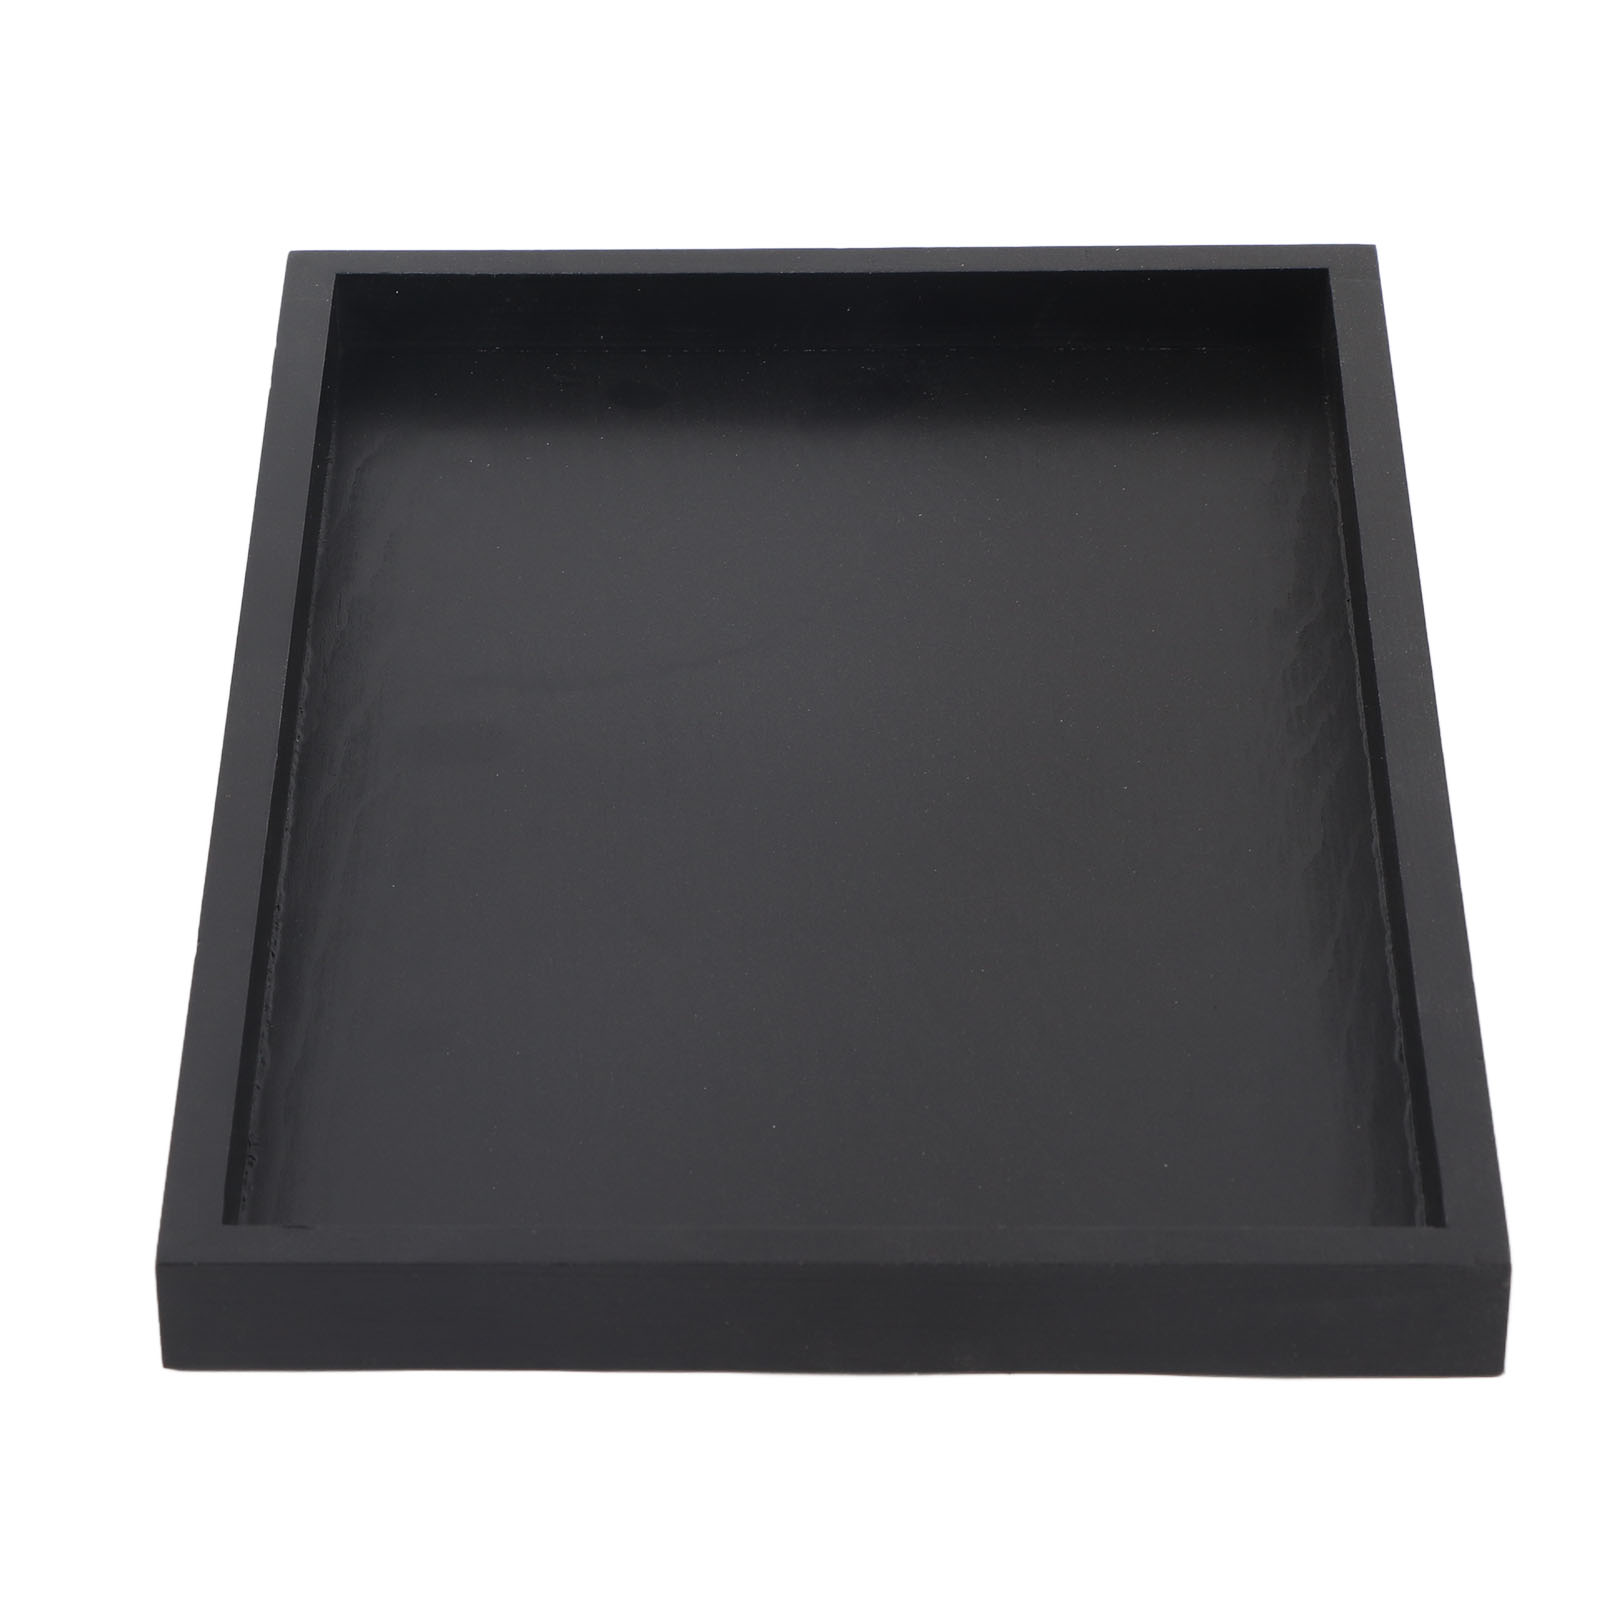 Large-Wood-Serving-Tea-Water-Drinks-Tray-Wooden-Breakfast-Food-Tea-Serving-Trays thumbnail 14